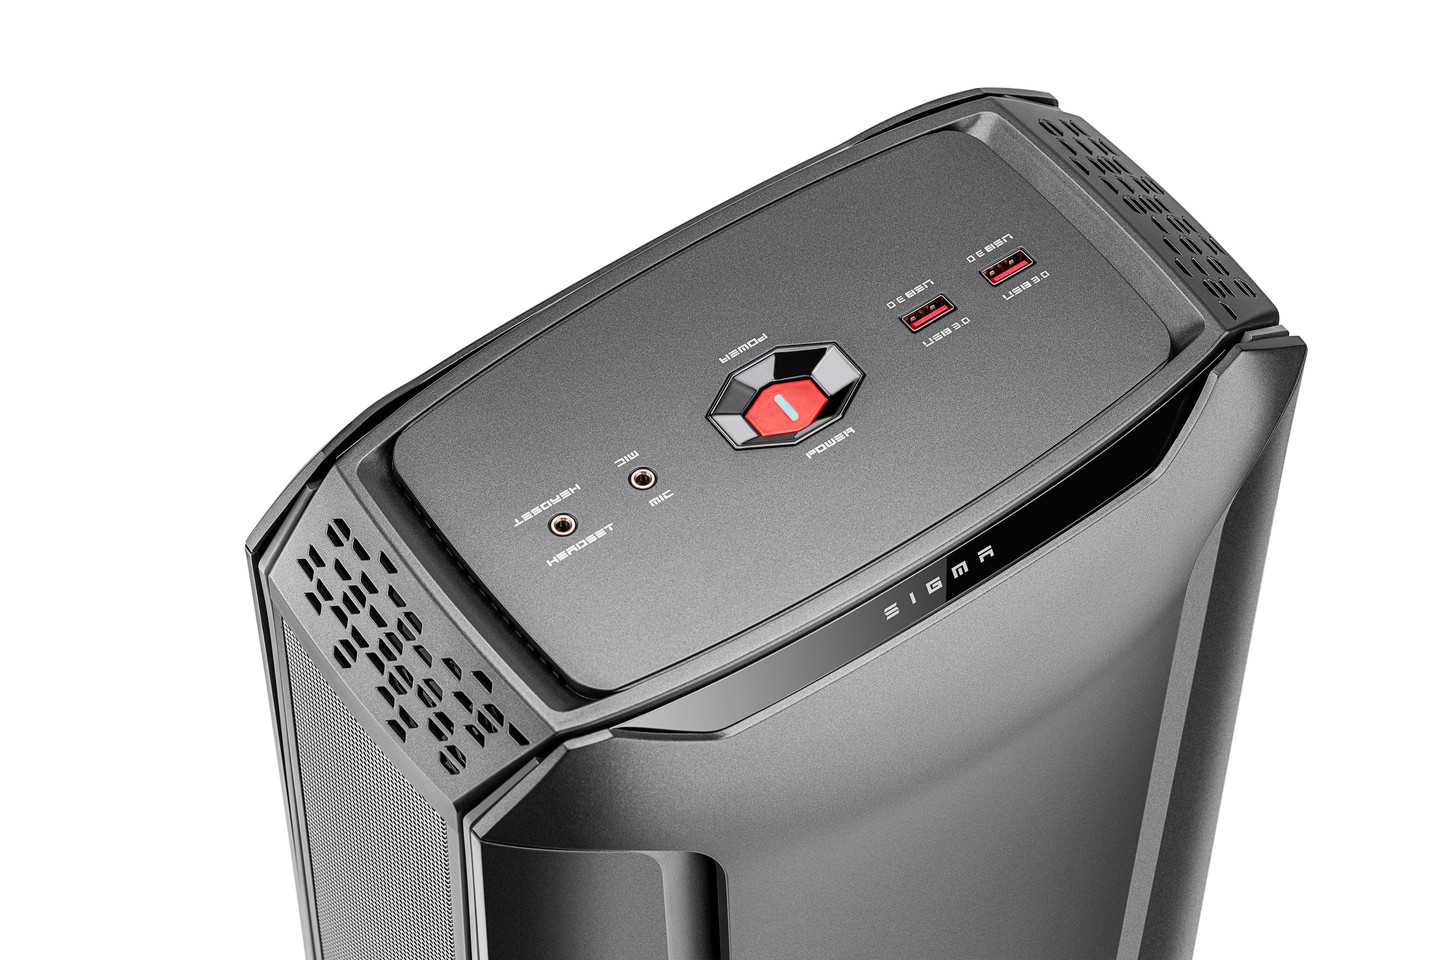 The New COLORFUL iGame Sigma I300 Gaming PC Is A Compact Gaming Box Packing But Packs A Punch